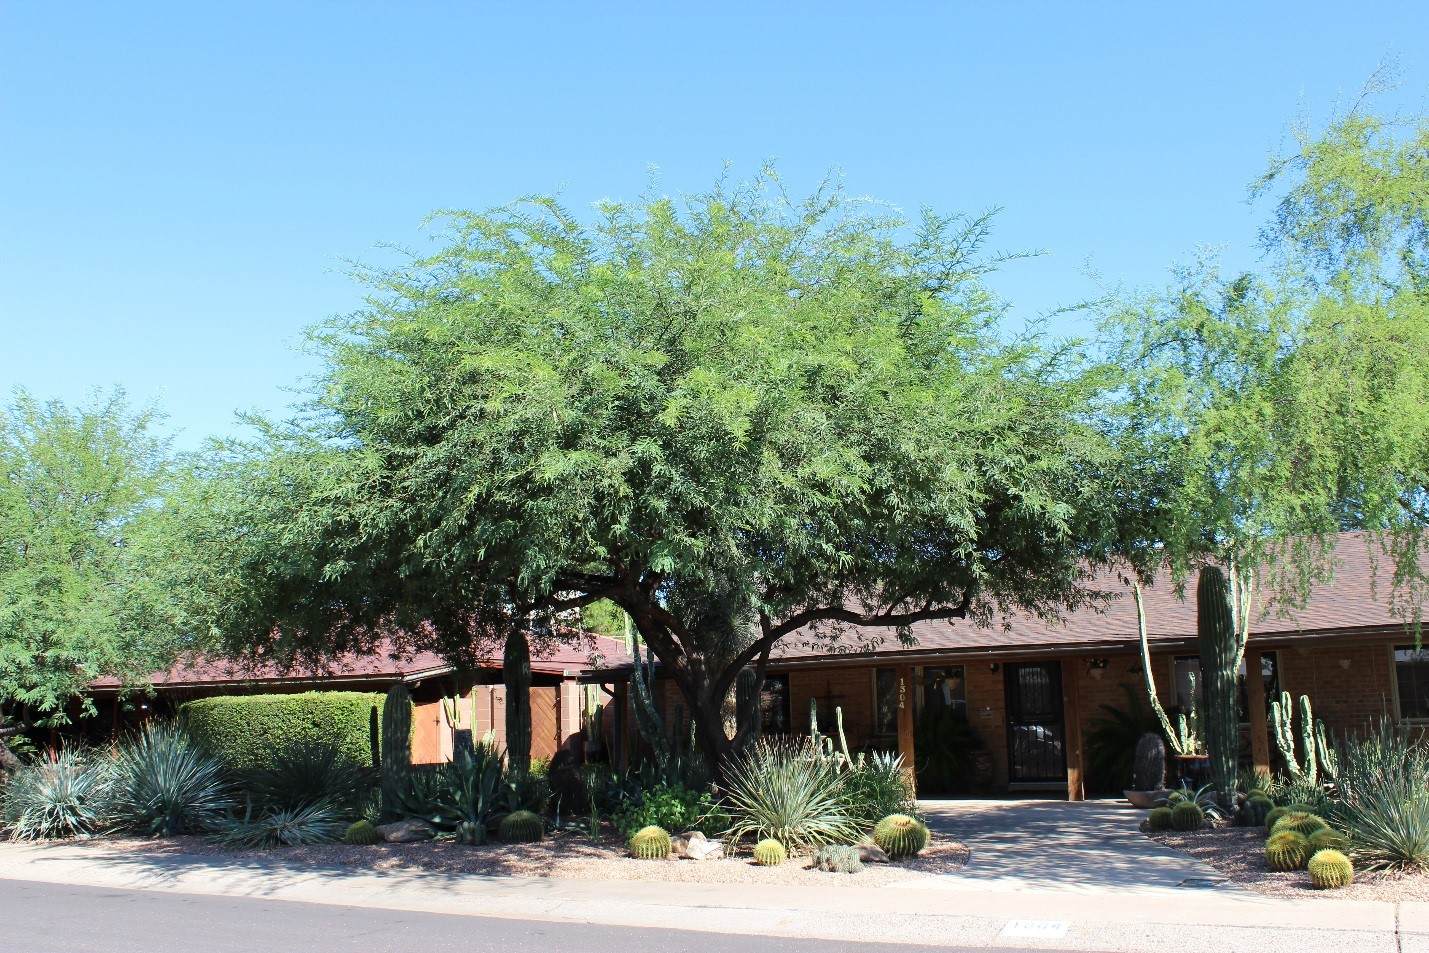 The Thornless Hybrid Mesquite (THM) is another favorite of people because the tree grows quickly has a wide lush green canopy that provides great shade ... & Trees Matter - Shade Tree Types: Thornless Hybrid Mesquite